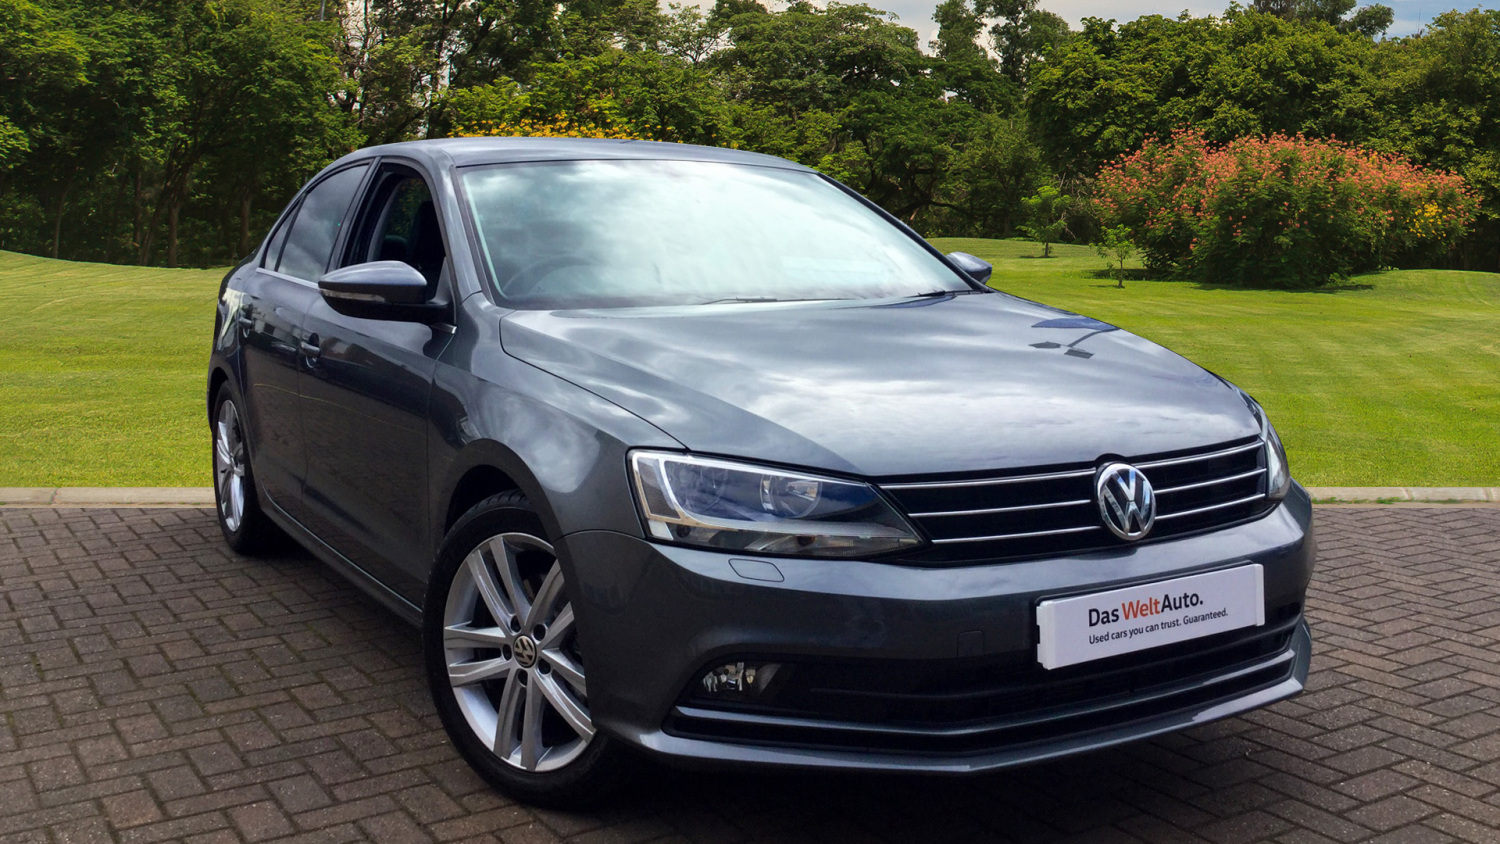 used volkswagen jetta 2 0 tdi 150 gt 4dr diesel saloon for sale in scotland macklin motors. Black Bedroom Furniture Sets. Home Design Ideas